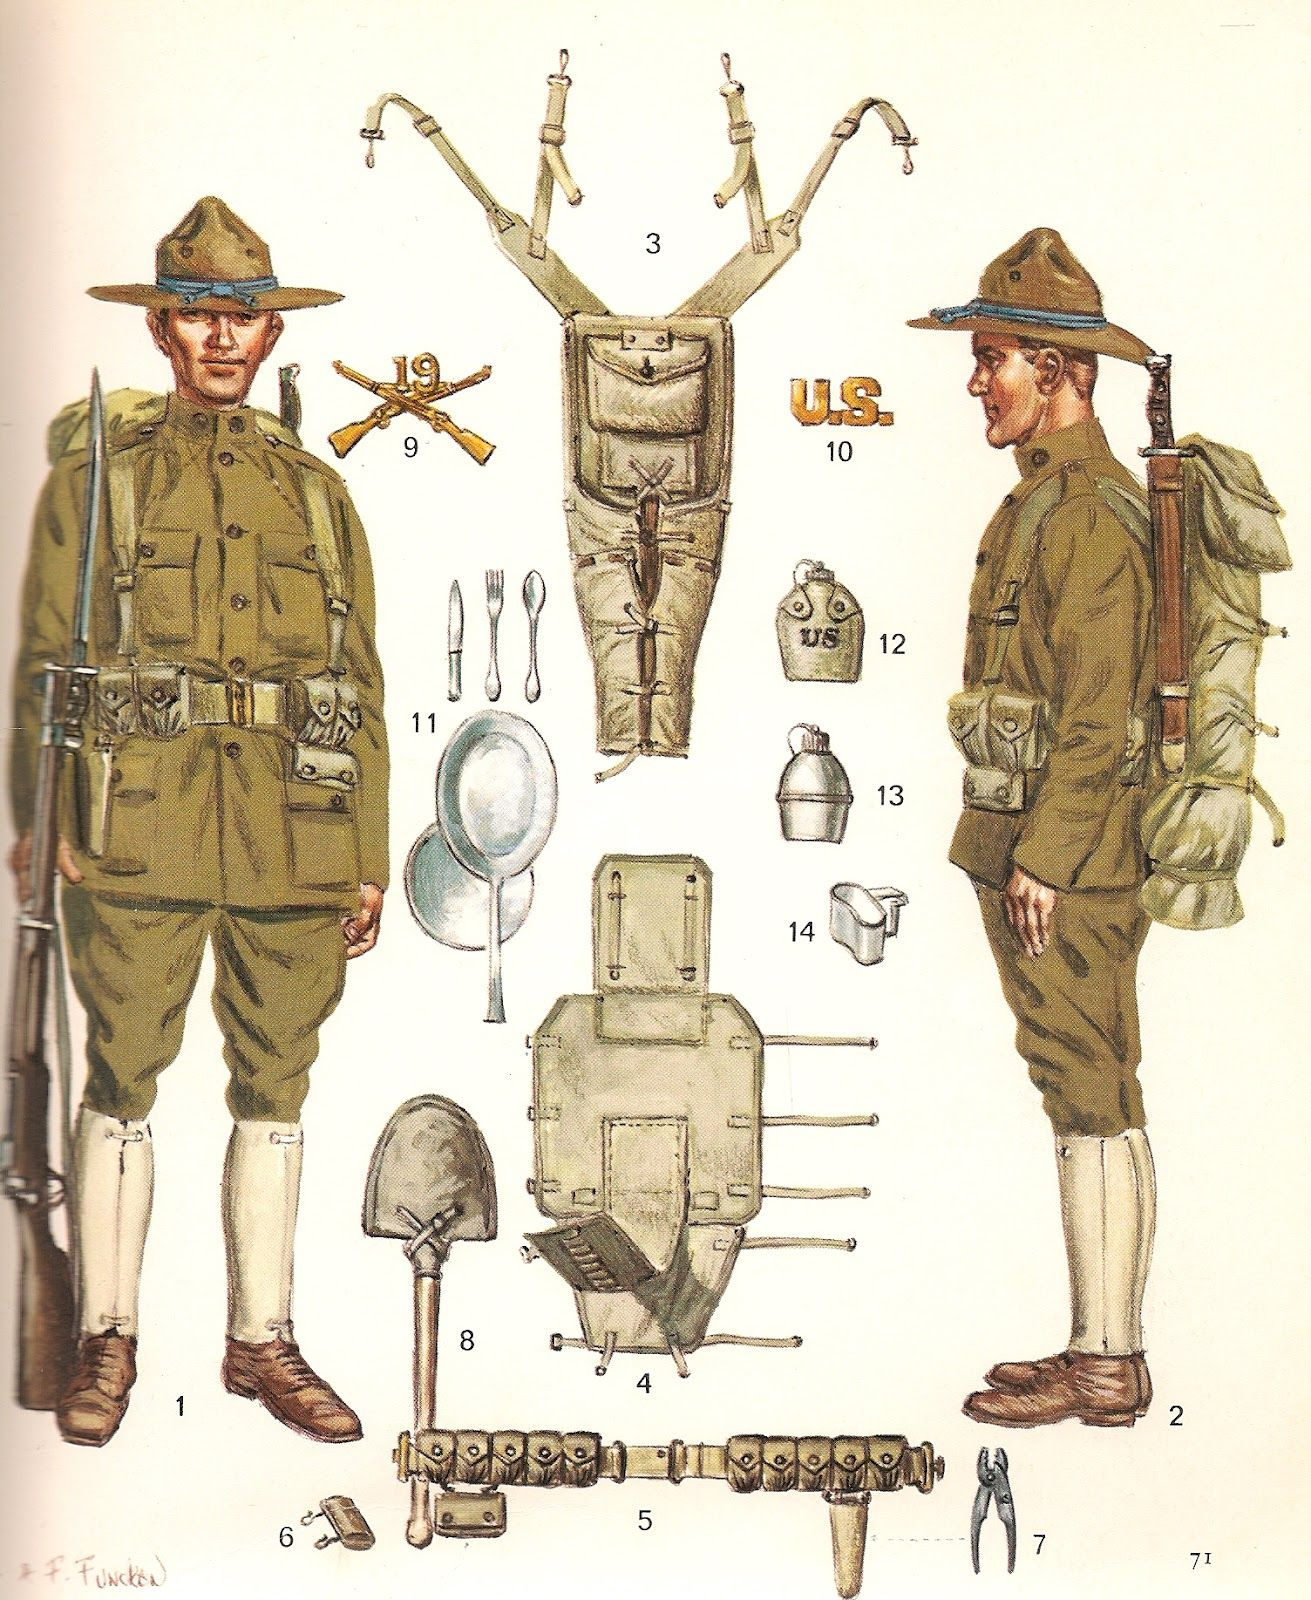 Uniform of the american soldier during ww1 from 1917-1918 ...